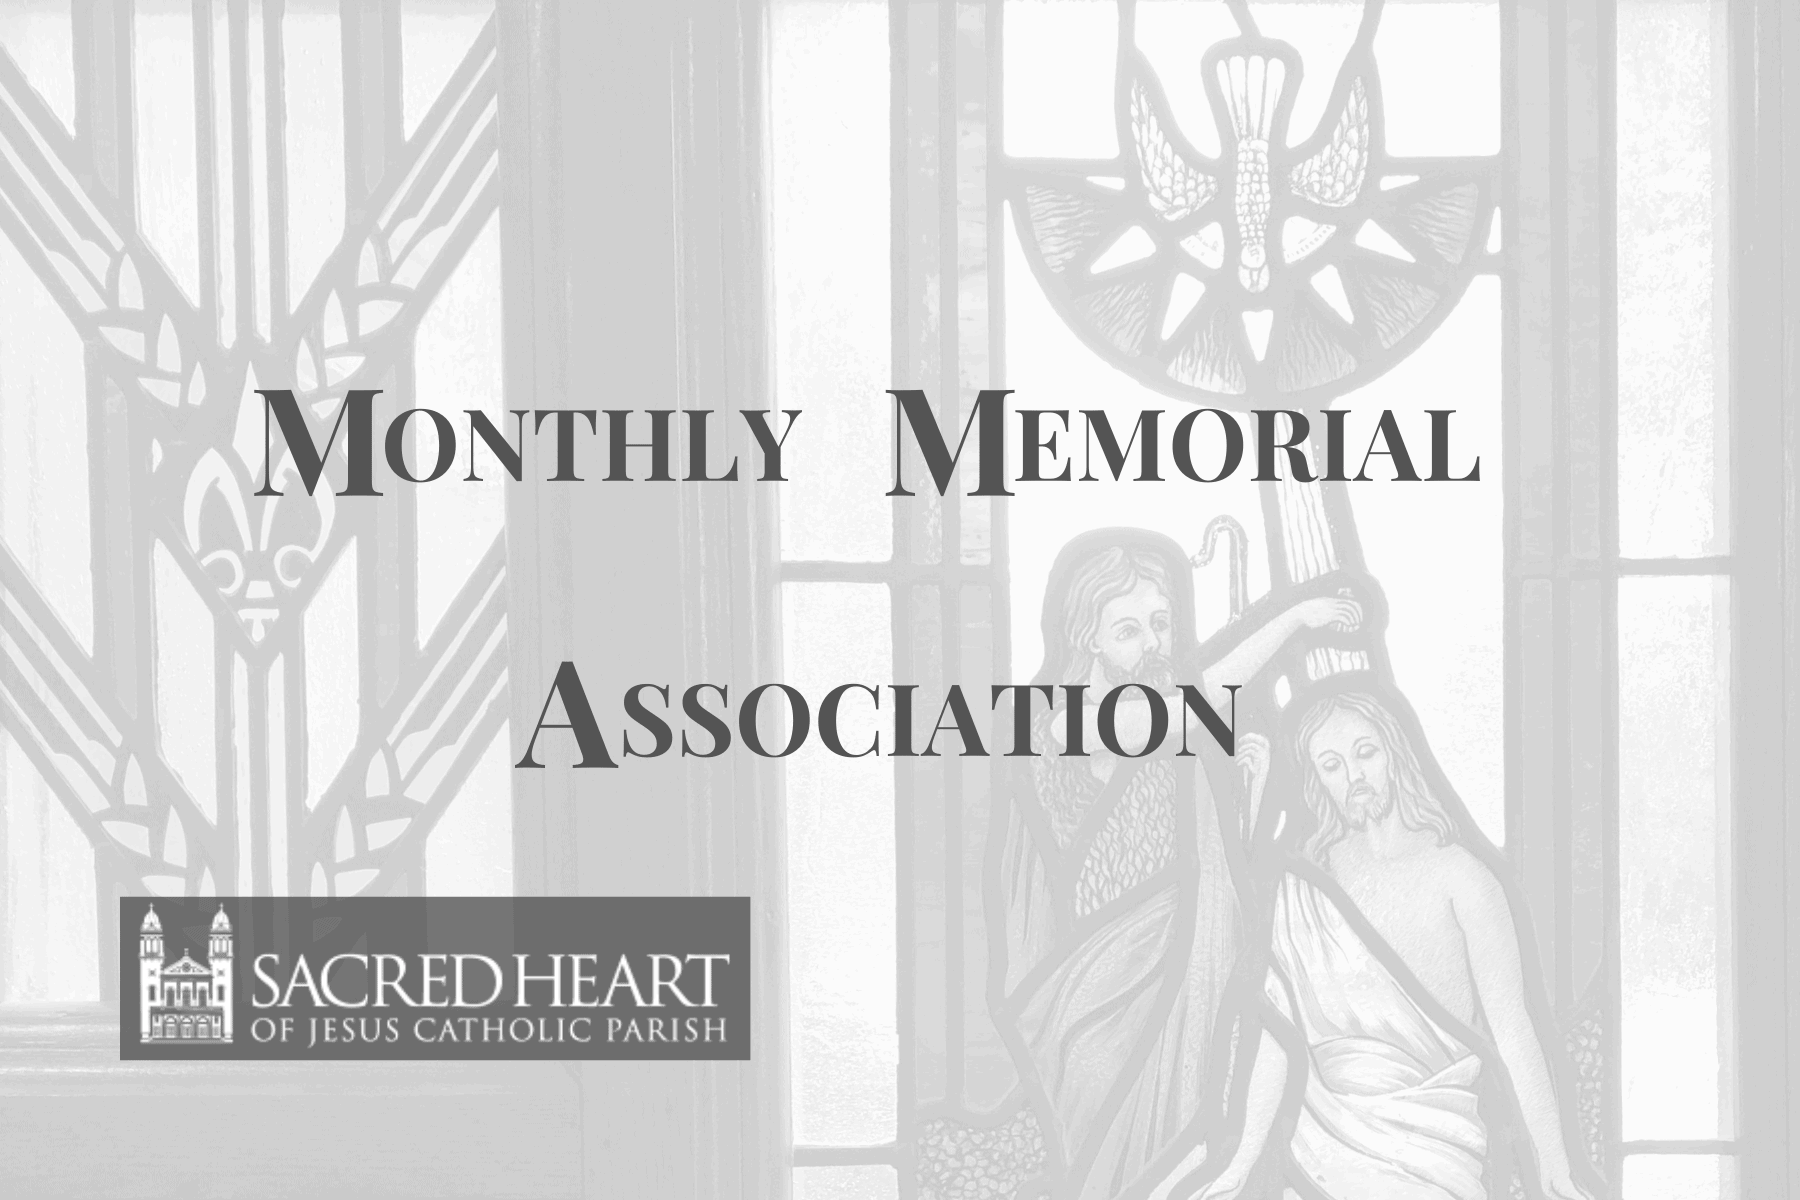 Monthly Memorial Association